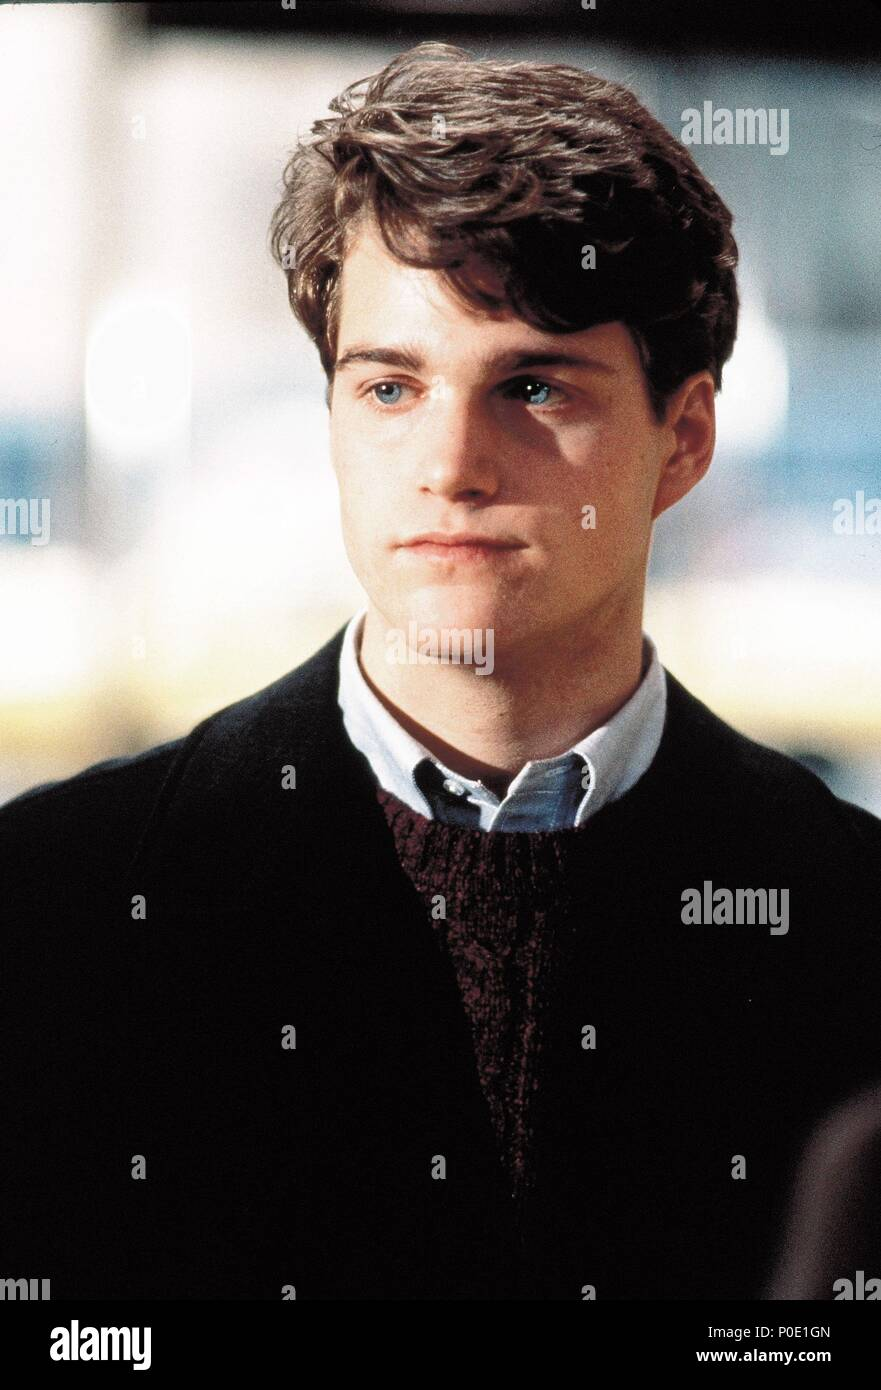 Original Film Title Scent Of A Woman English Title Scent Of A Woman Film Director Martin Brest Year 1992 Stars Chris O Donnell Credit Universal Pictures Album Stock Photo Alamy